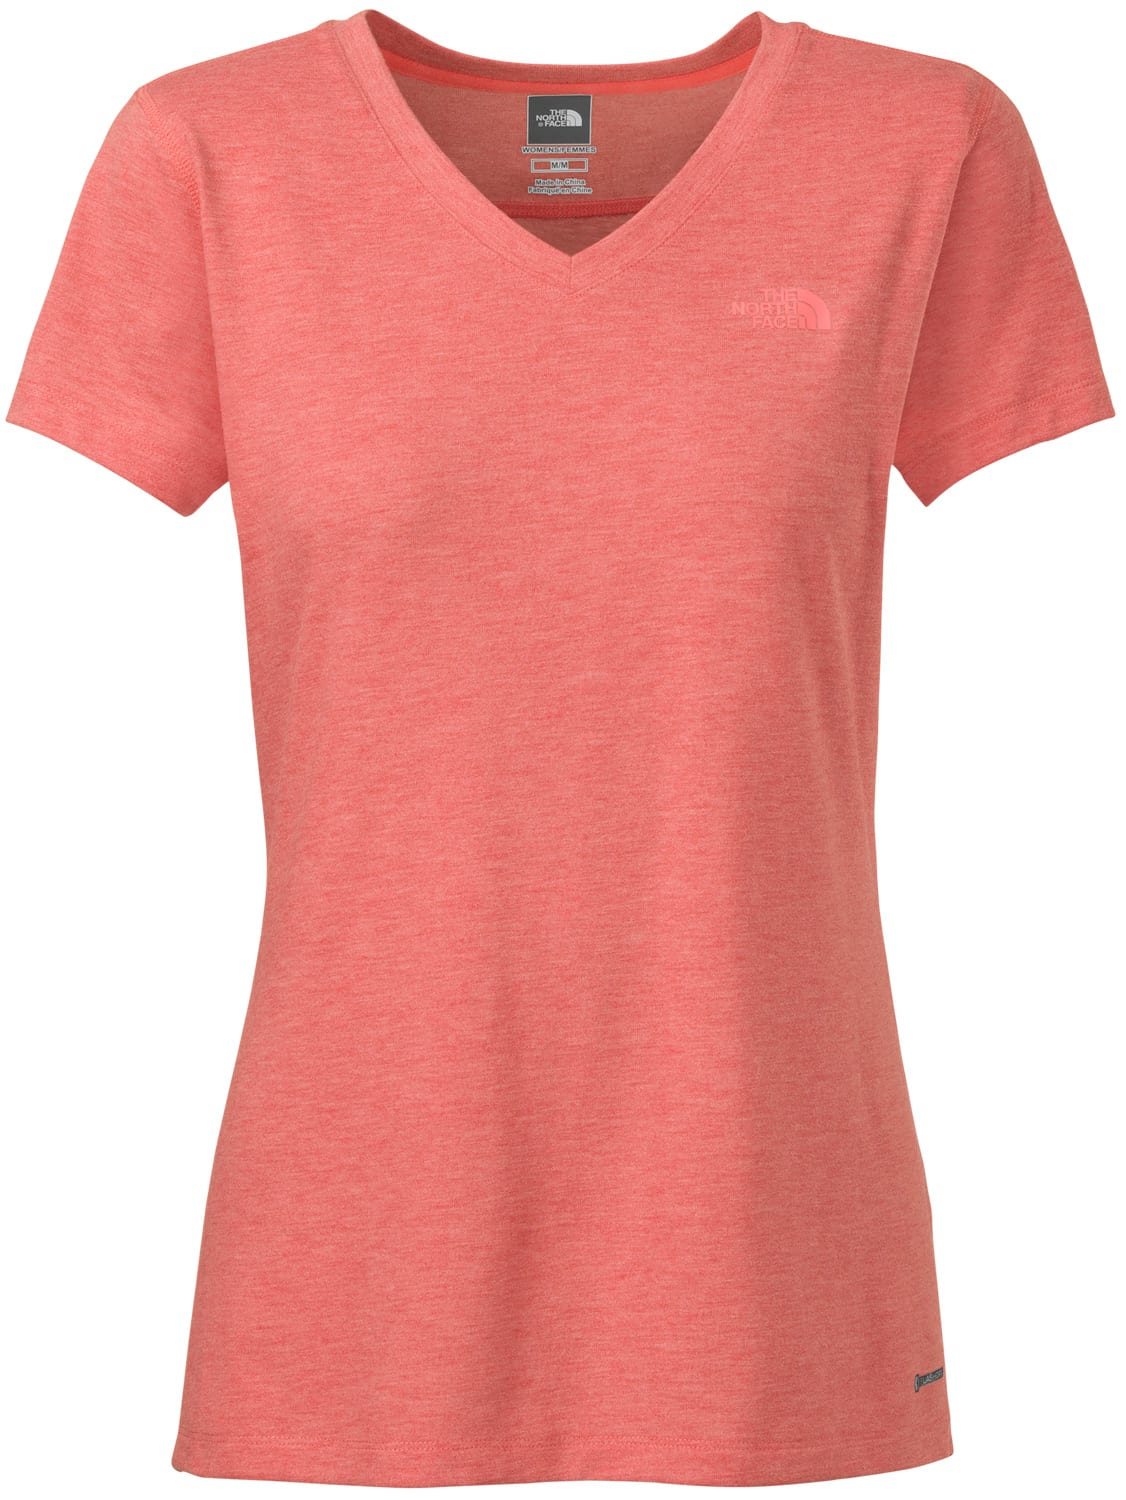 On Sale The North Face Rdt V Neck T Shirt Womens Up To